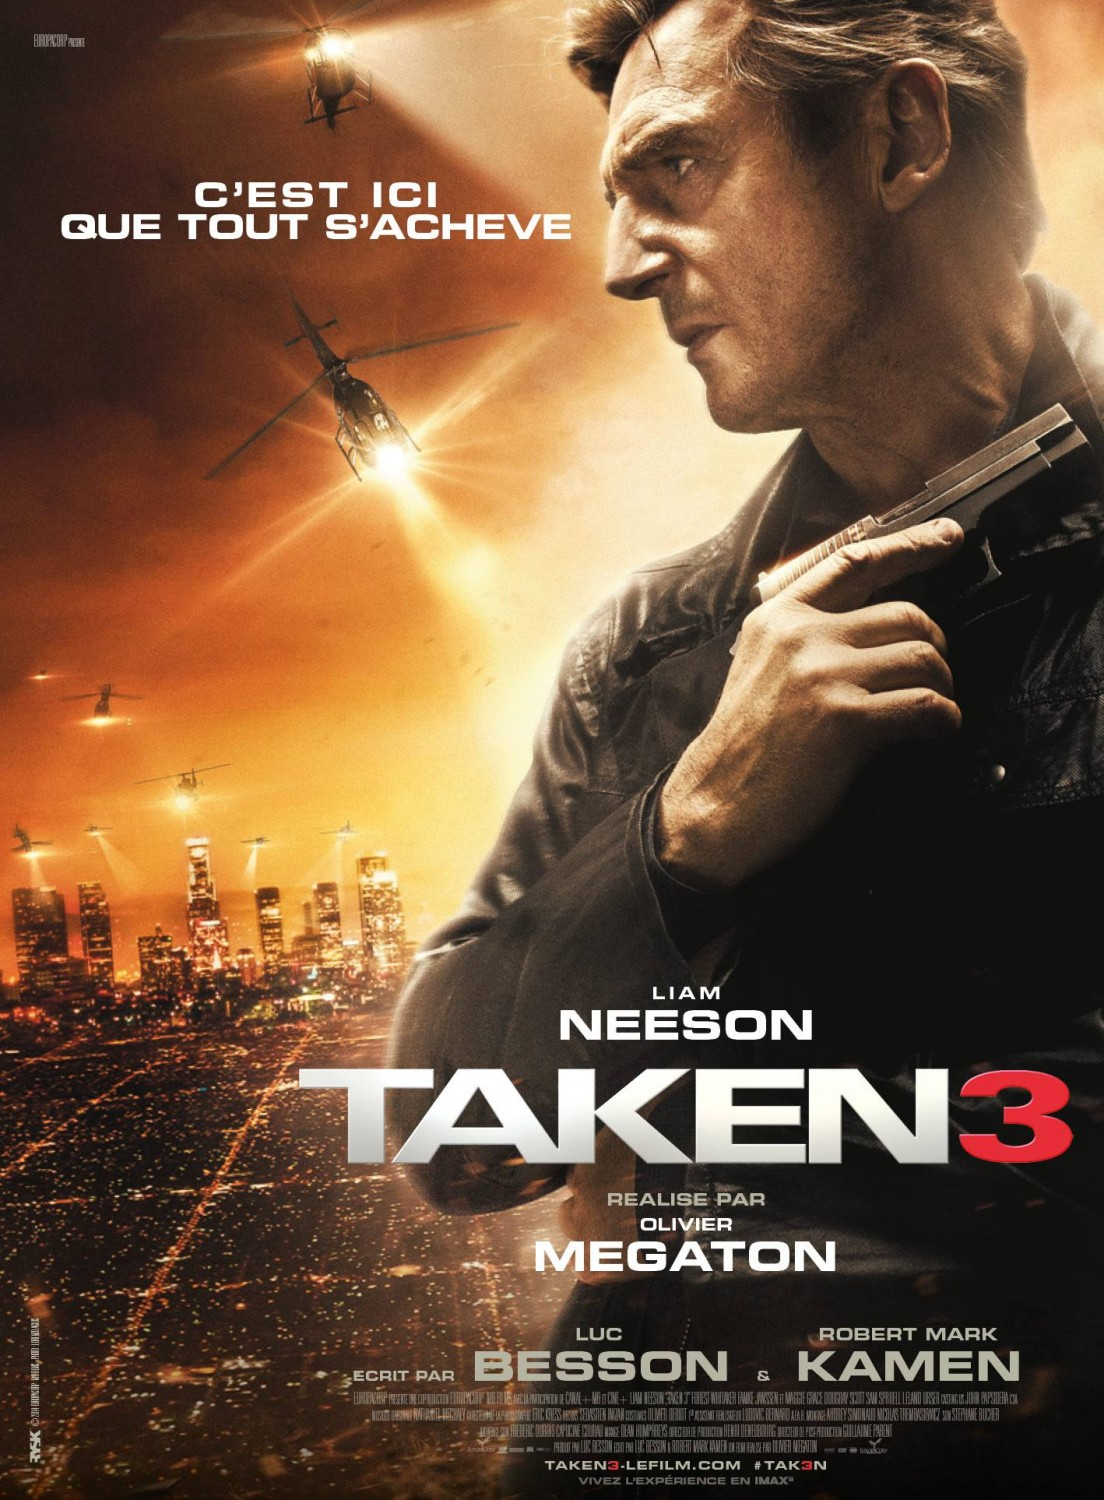 Taken 3-Official Poster XLG-08DEZEMBRO2014